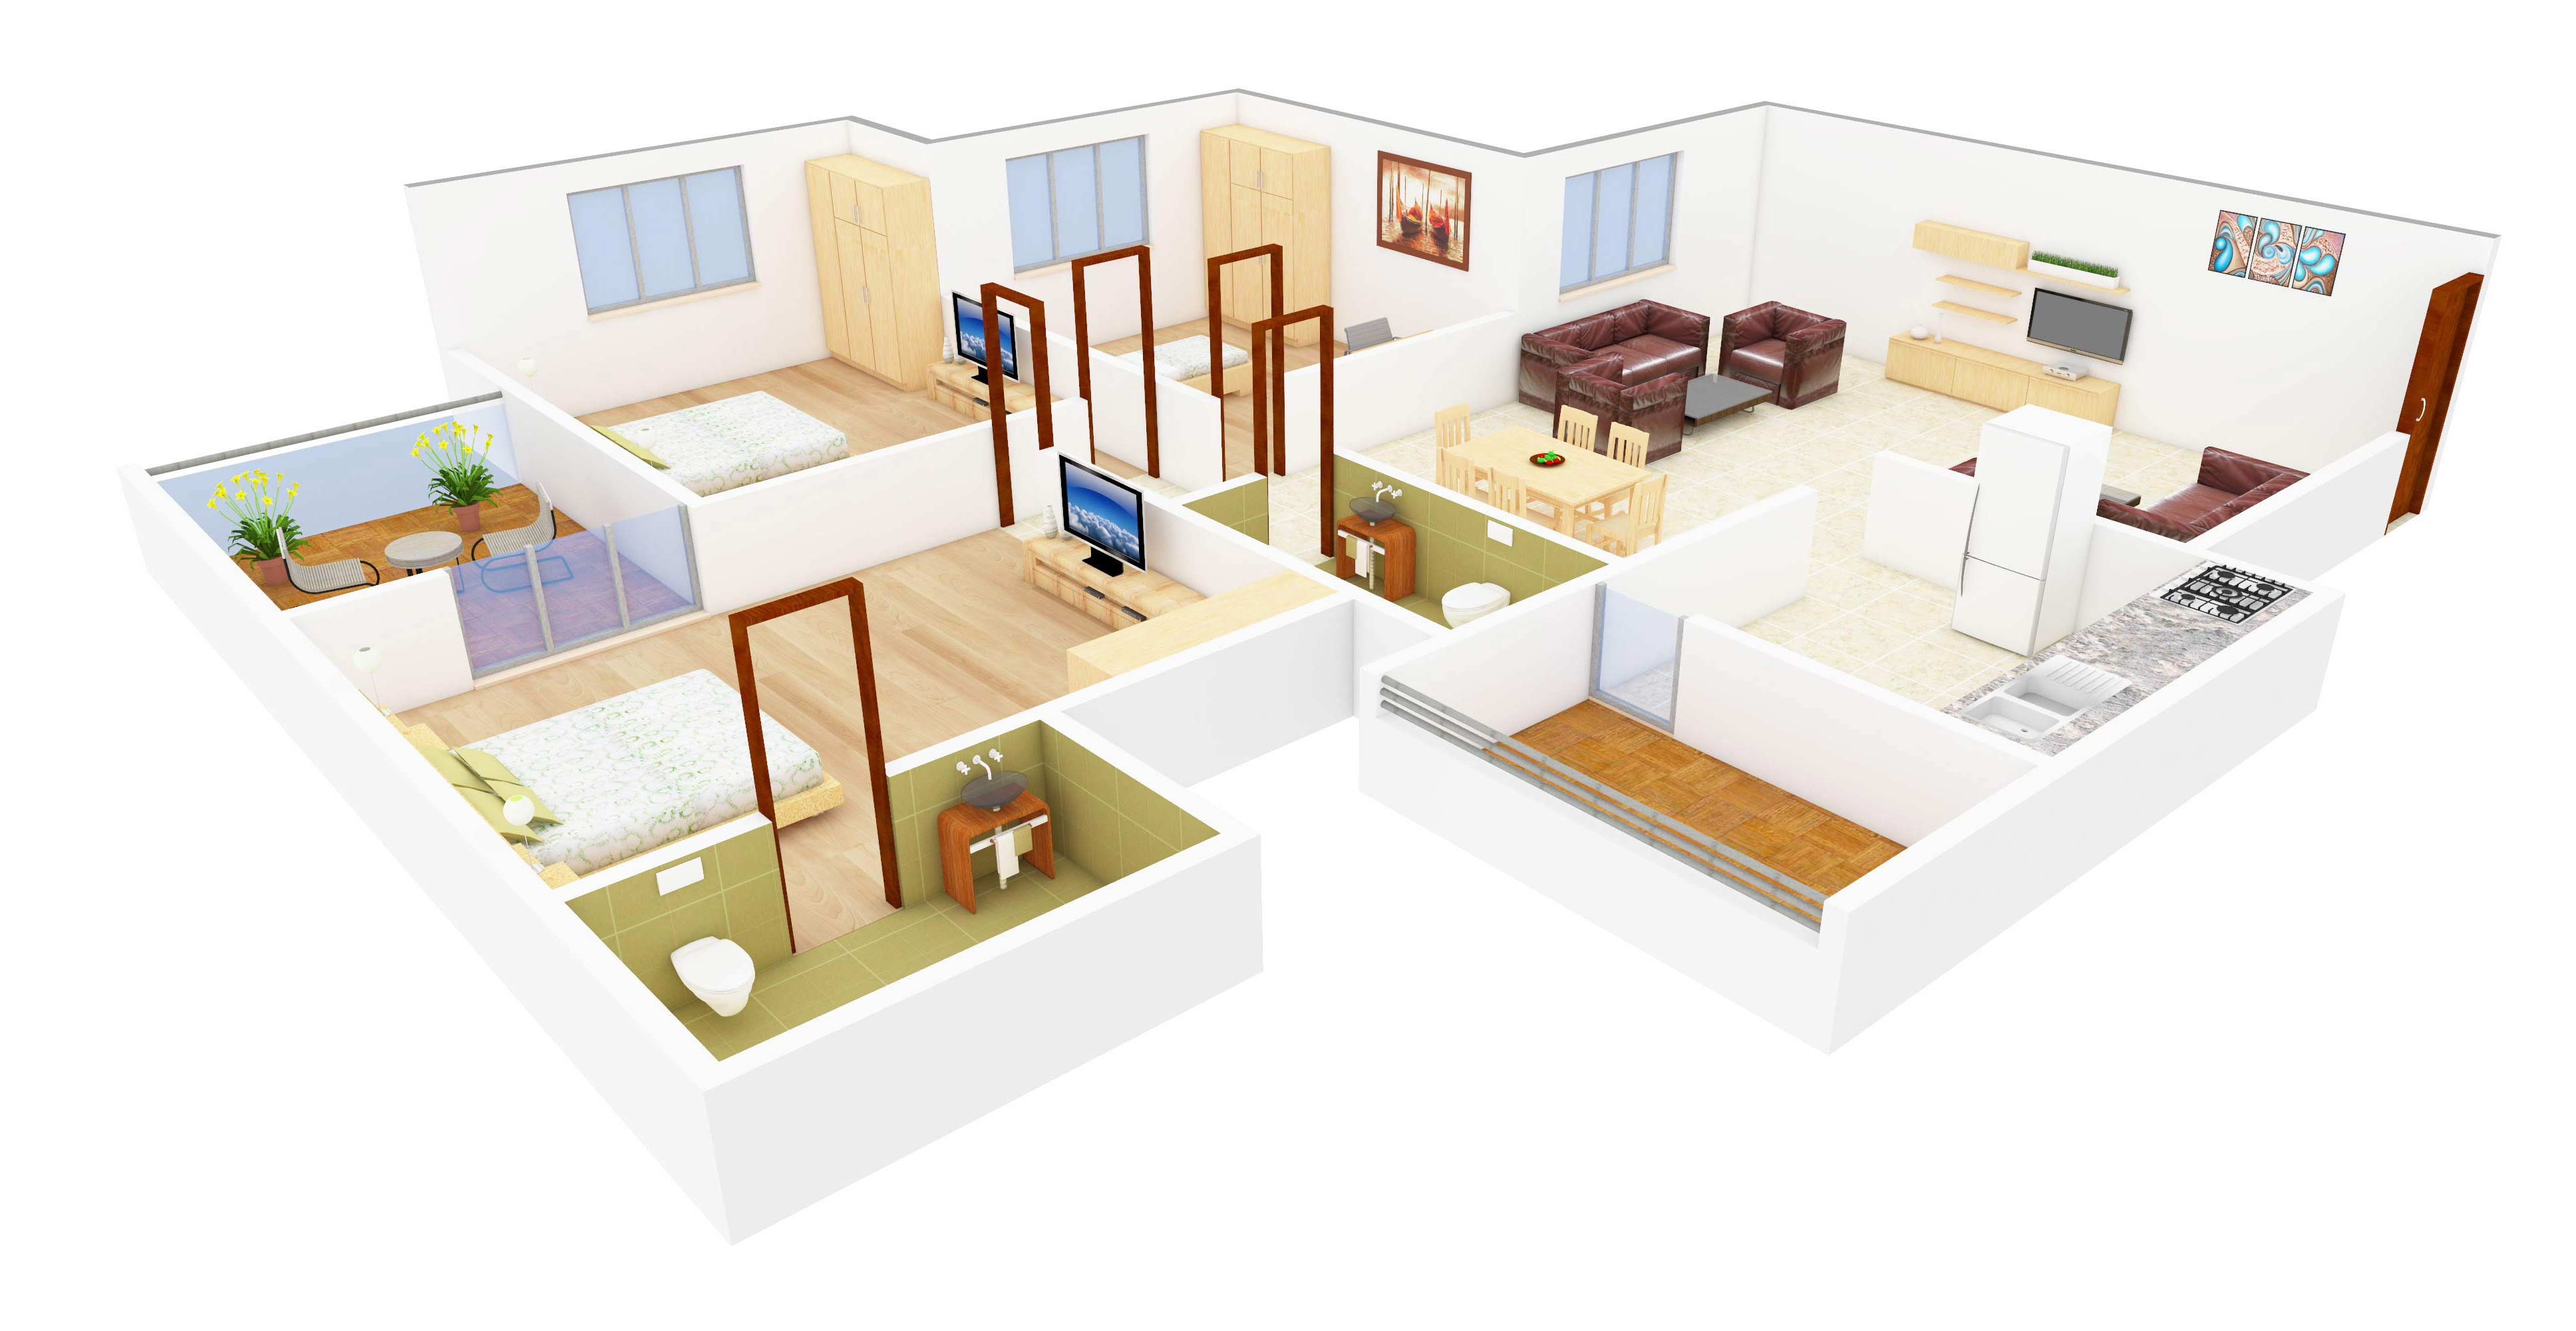 3d floor plans now foresee your dream home netgains. Black Bedroom Furniture Sets. Home Design Ideas